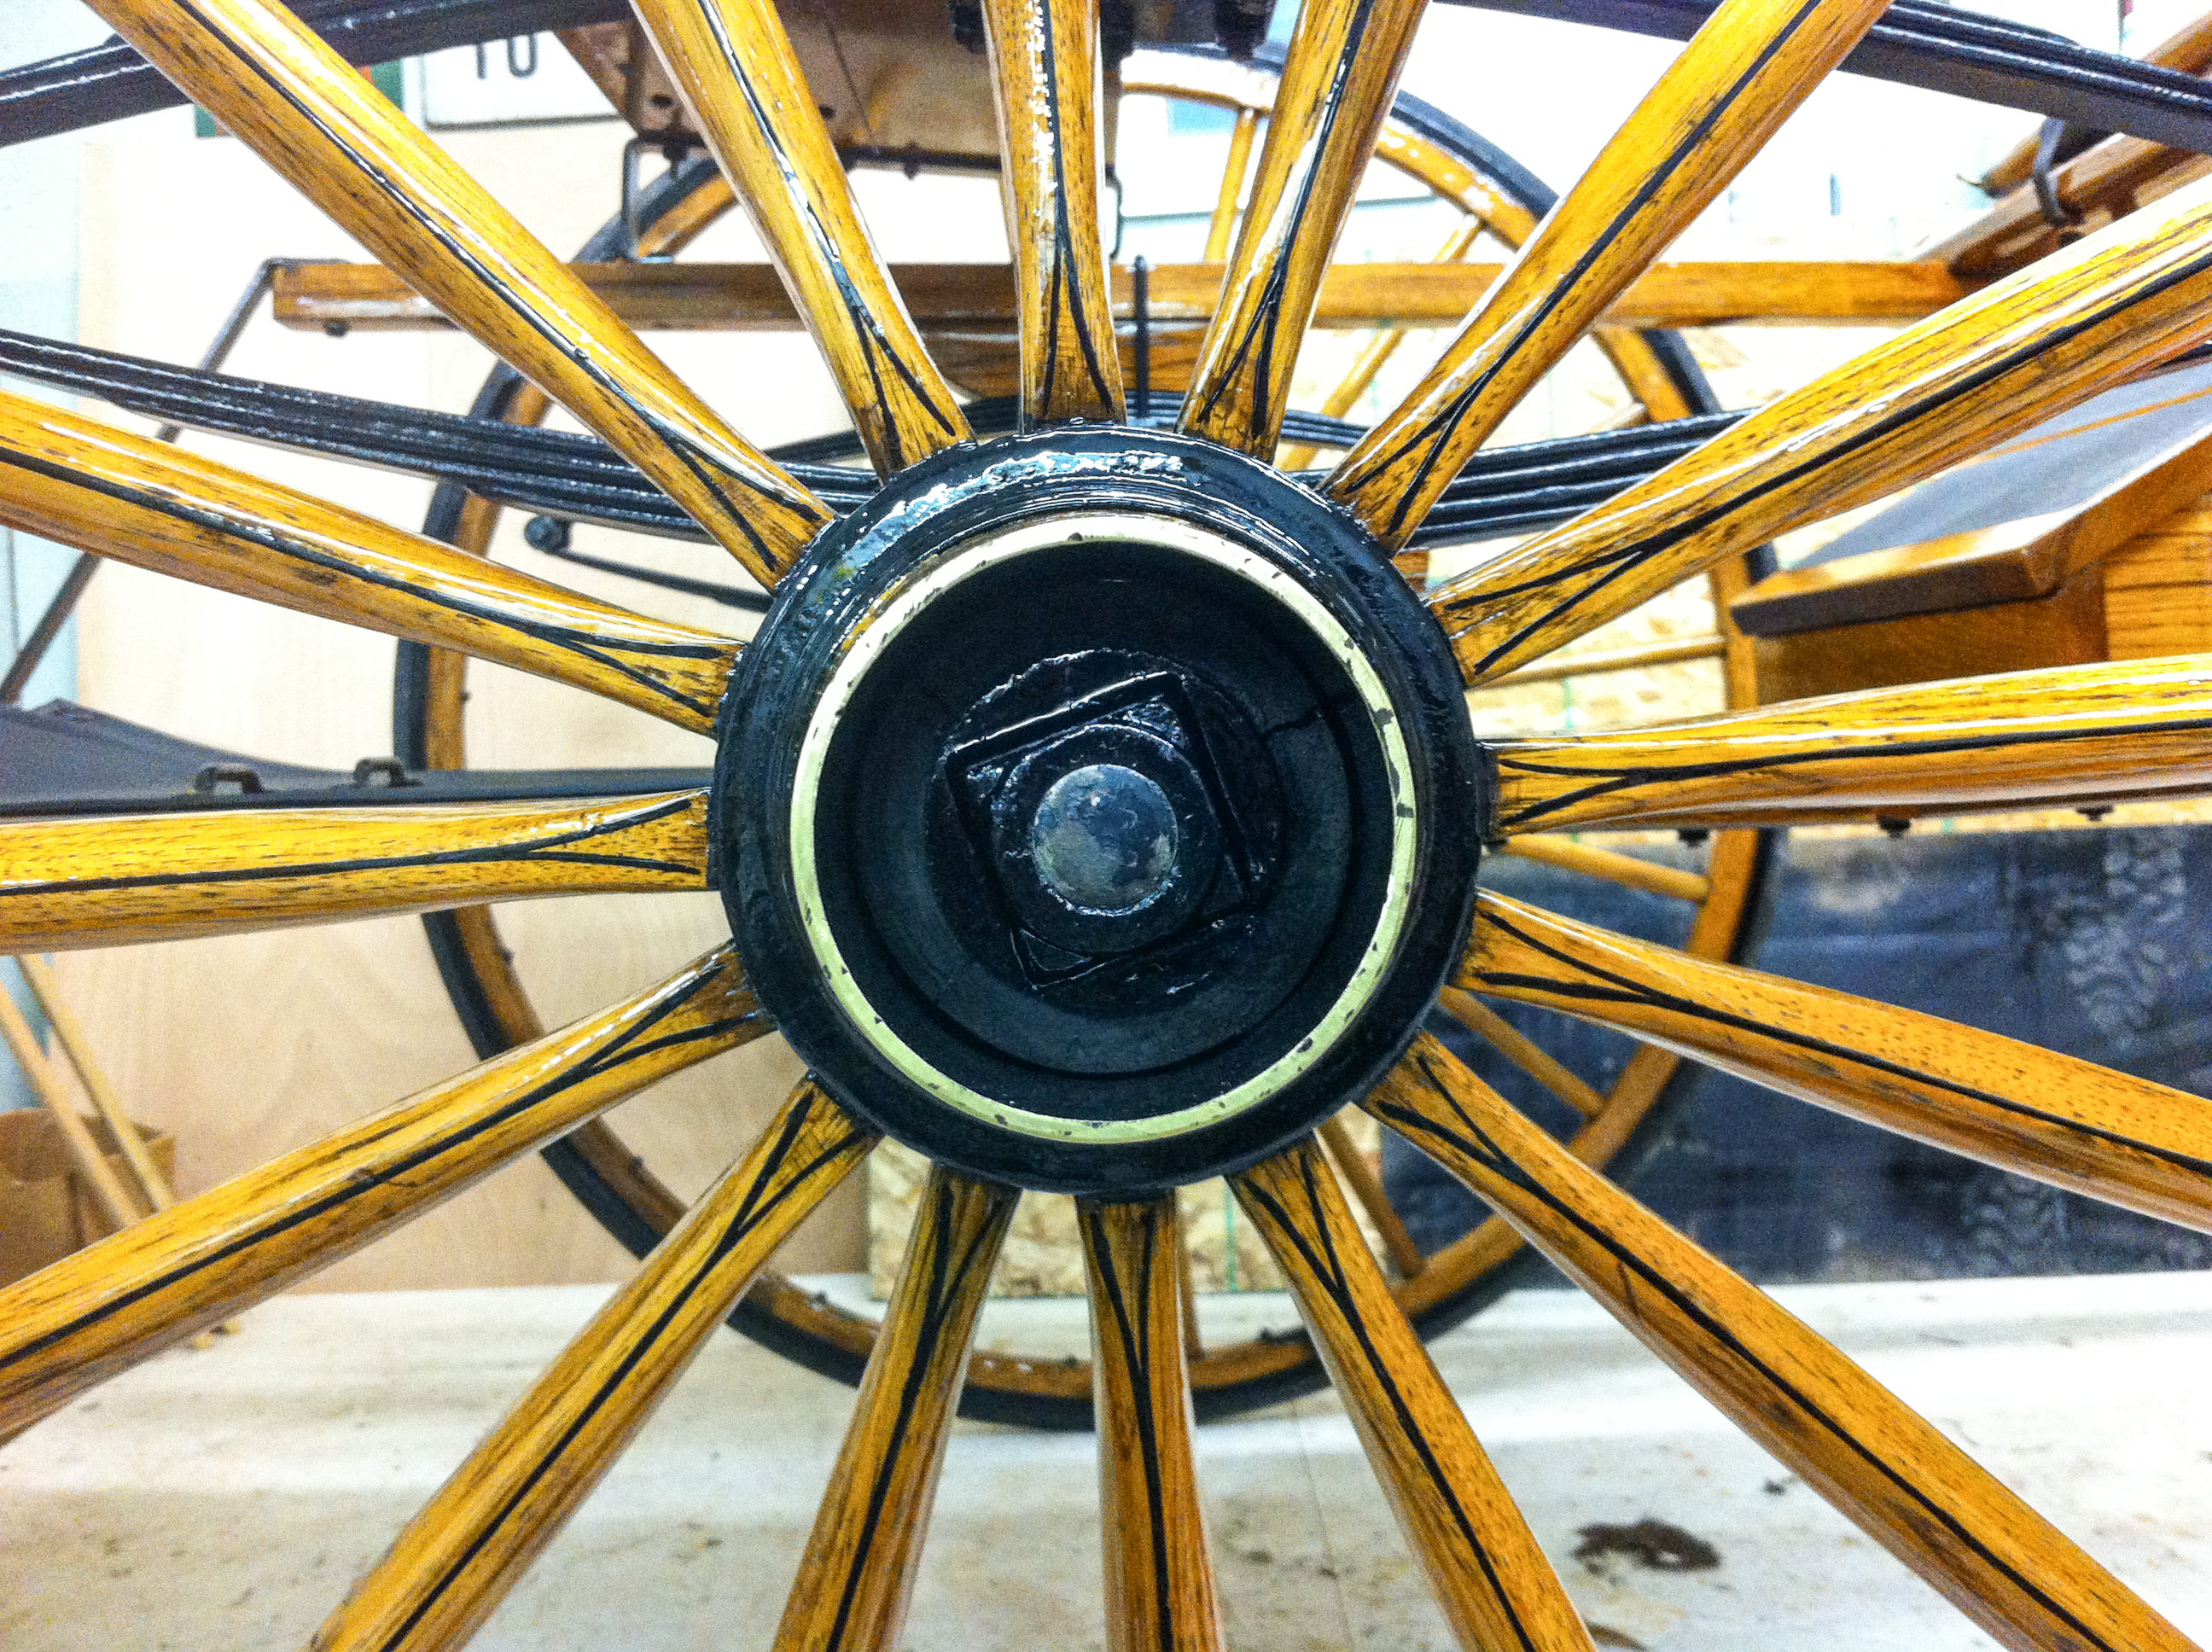 Antique Carriage Wheel